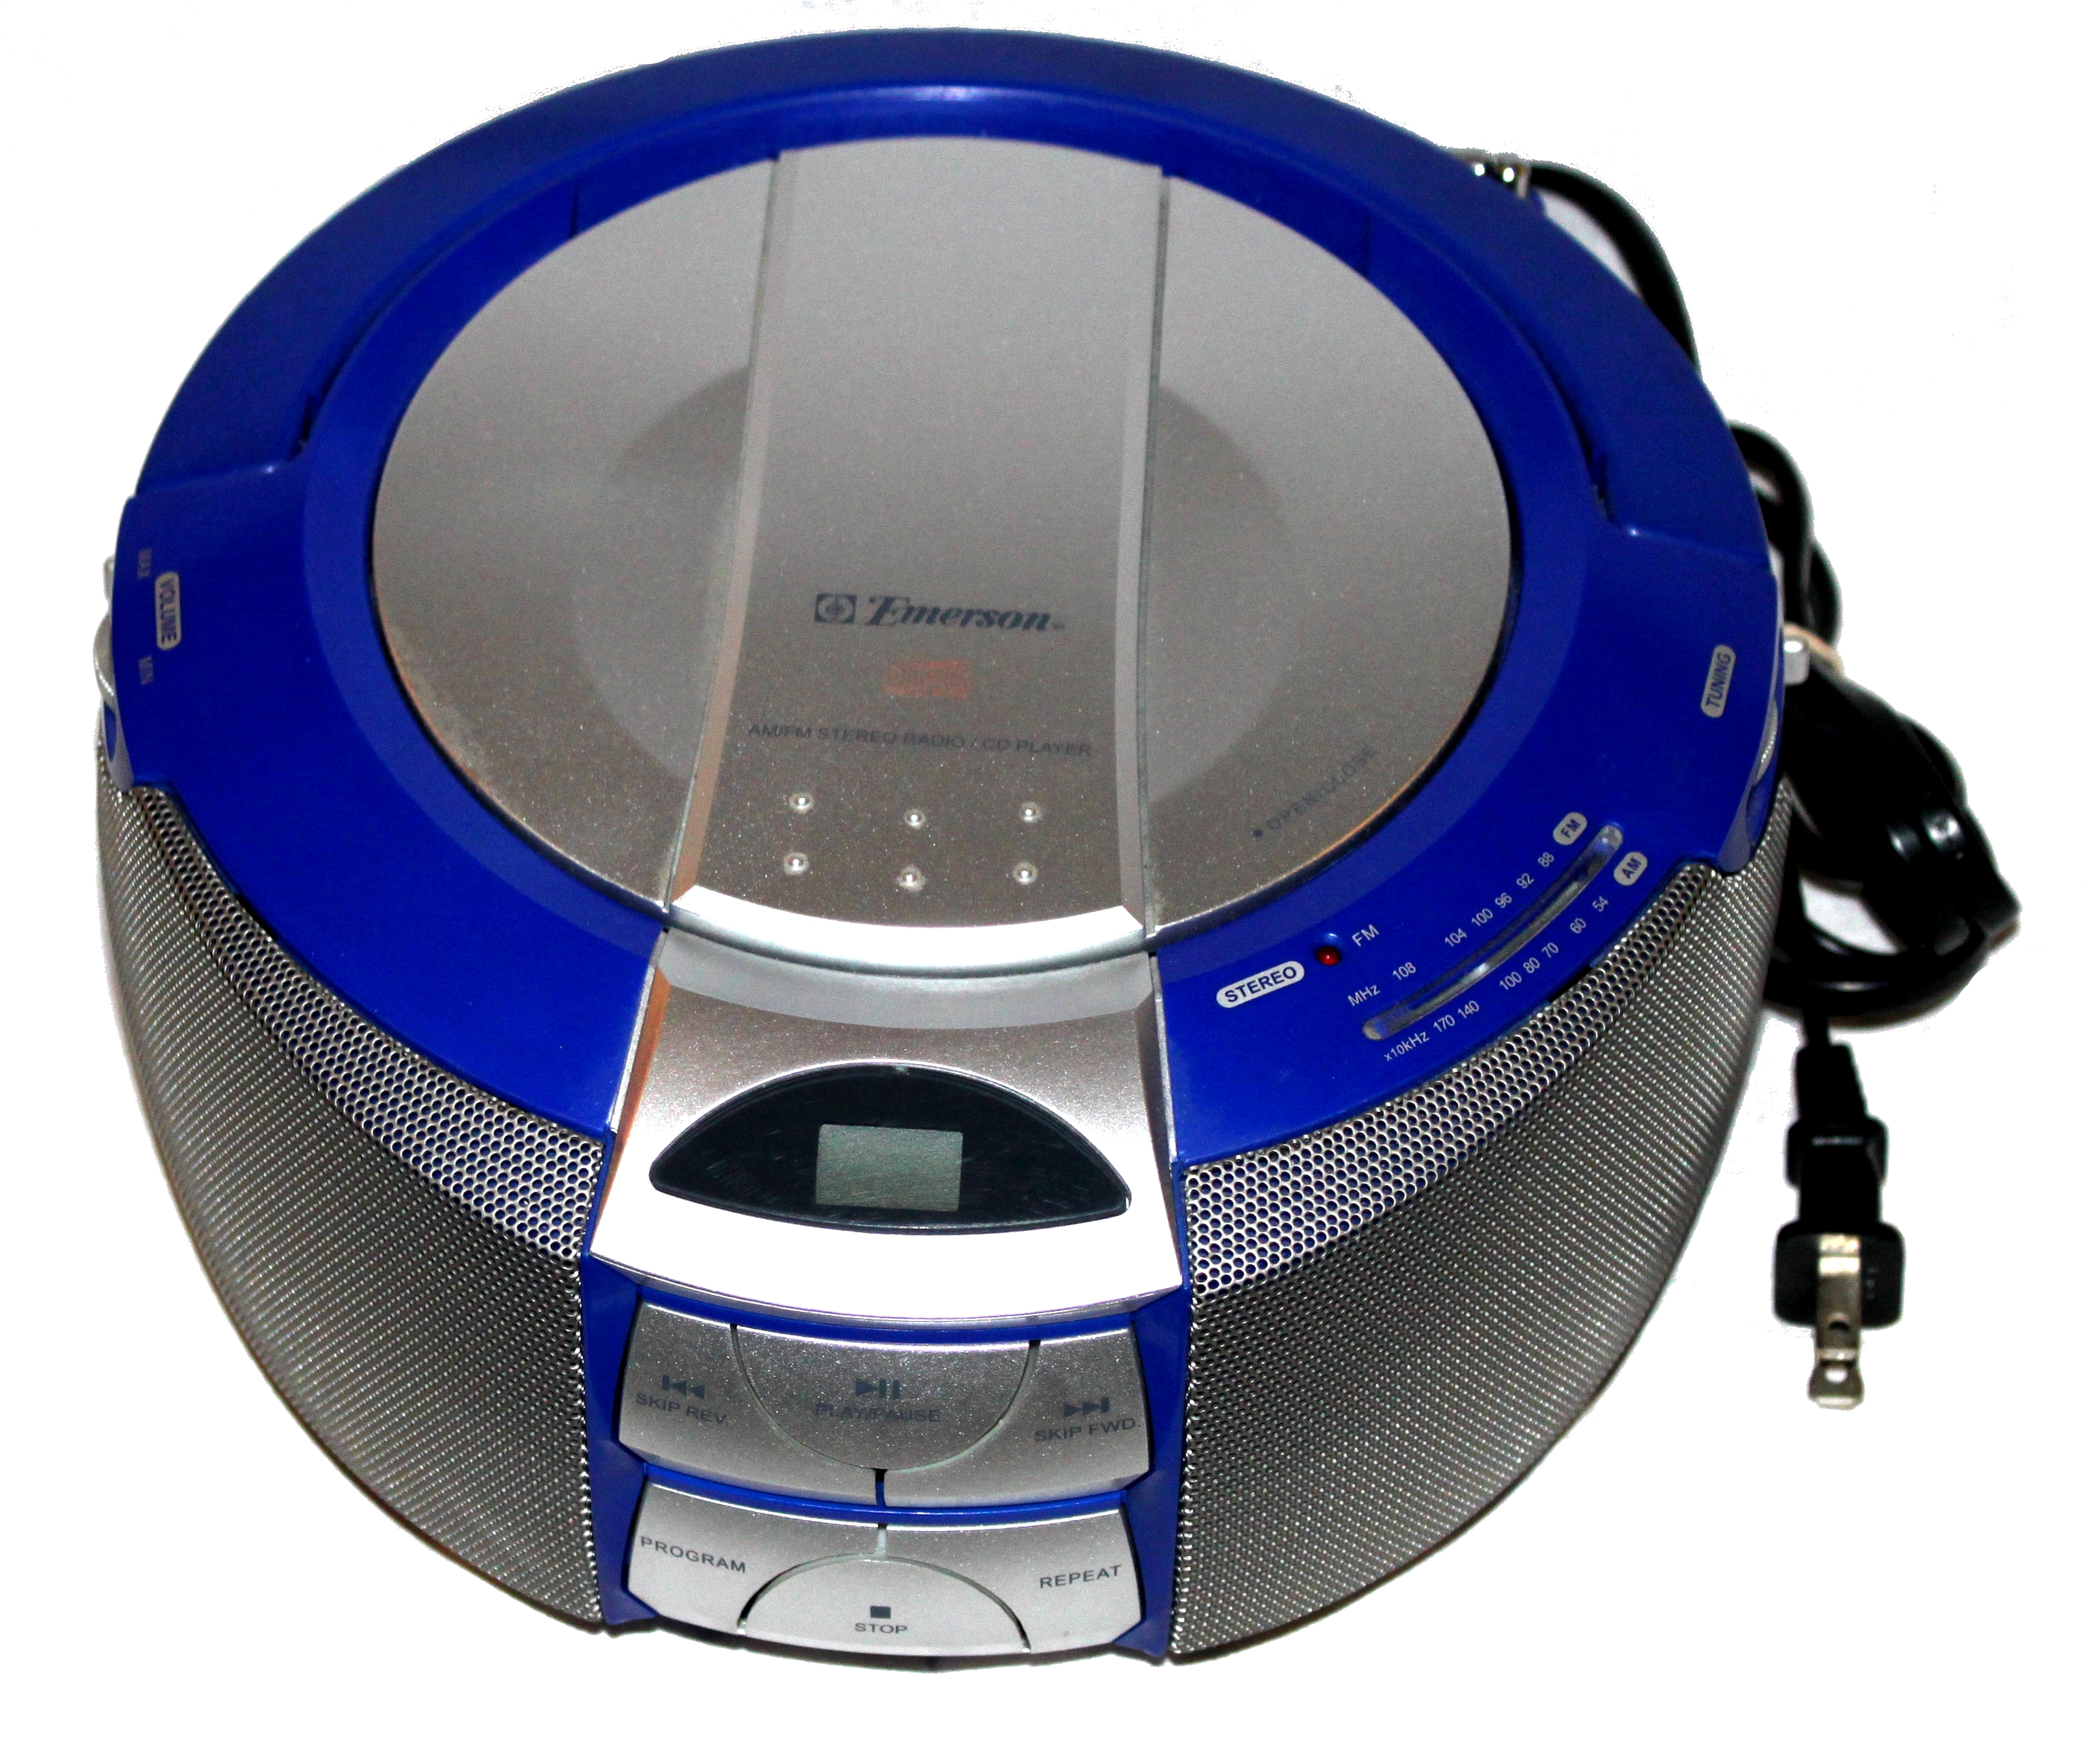 Cdc Protocols furthermore P 15281 Sony Zsrs70 Portable Cd Player With Bluetooth And Fmdab Radio moreover Pioneer Tuner Wiring Diagram also 6918260 likewise Sony Dab. on panasonic clock radio cd player